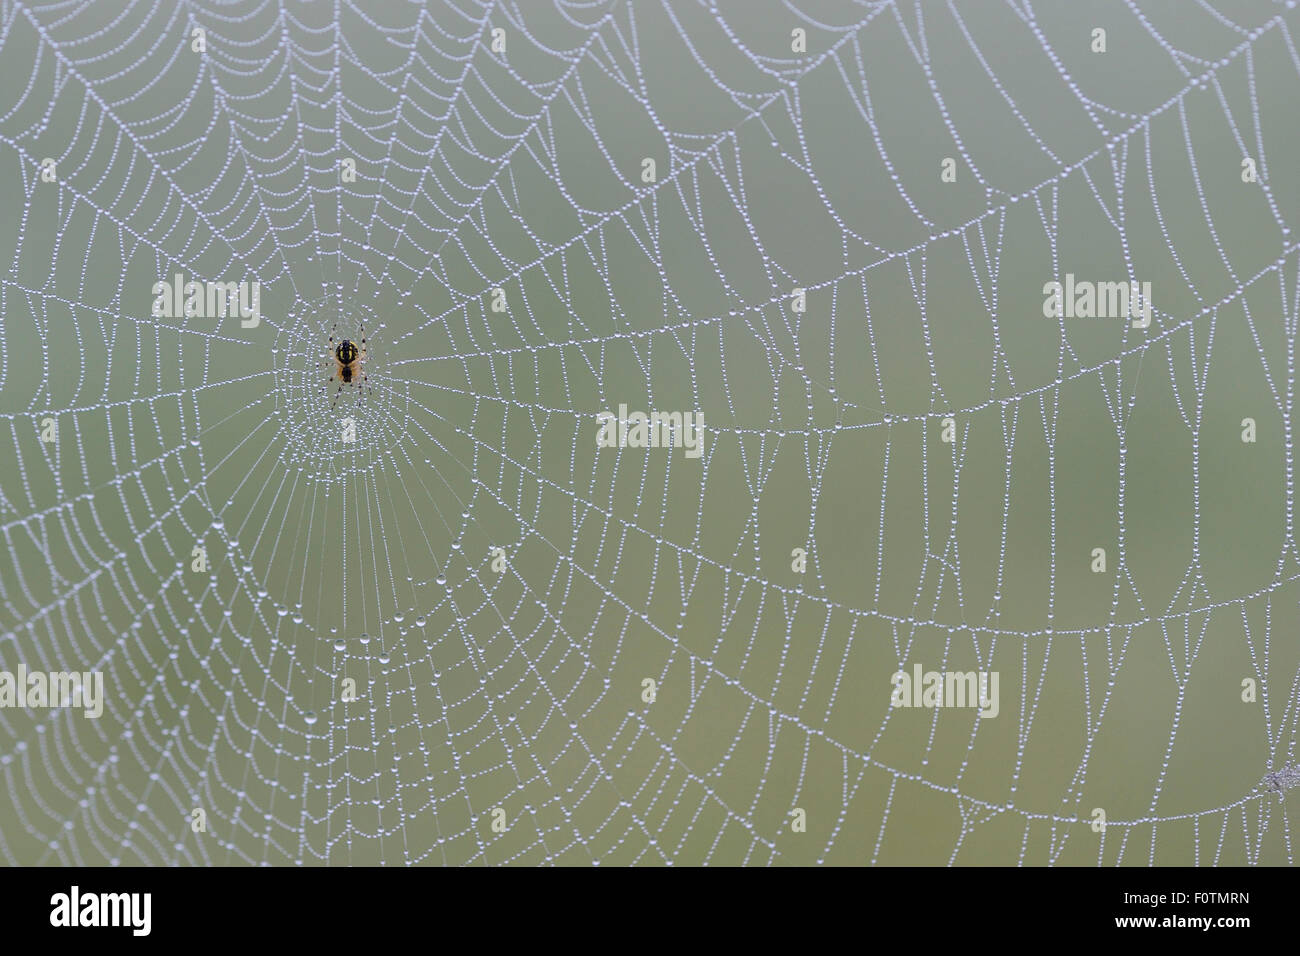 Spiders web (Araneidae sp) covered in dew, with ventral view of spider, Eastern Rhodope Mountains, Bulgaria, May. - Stock Image